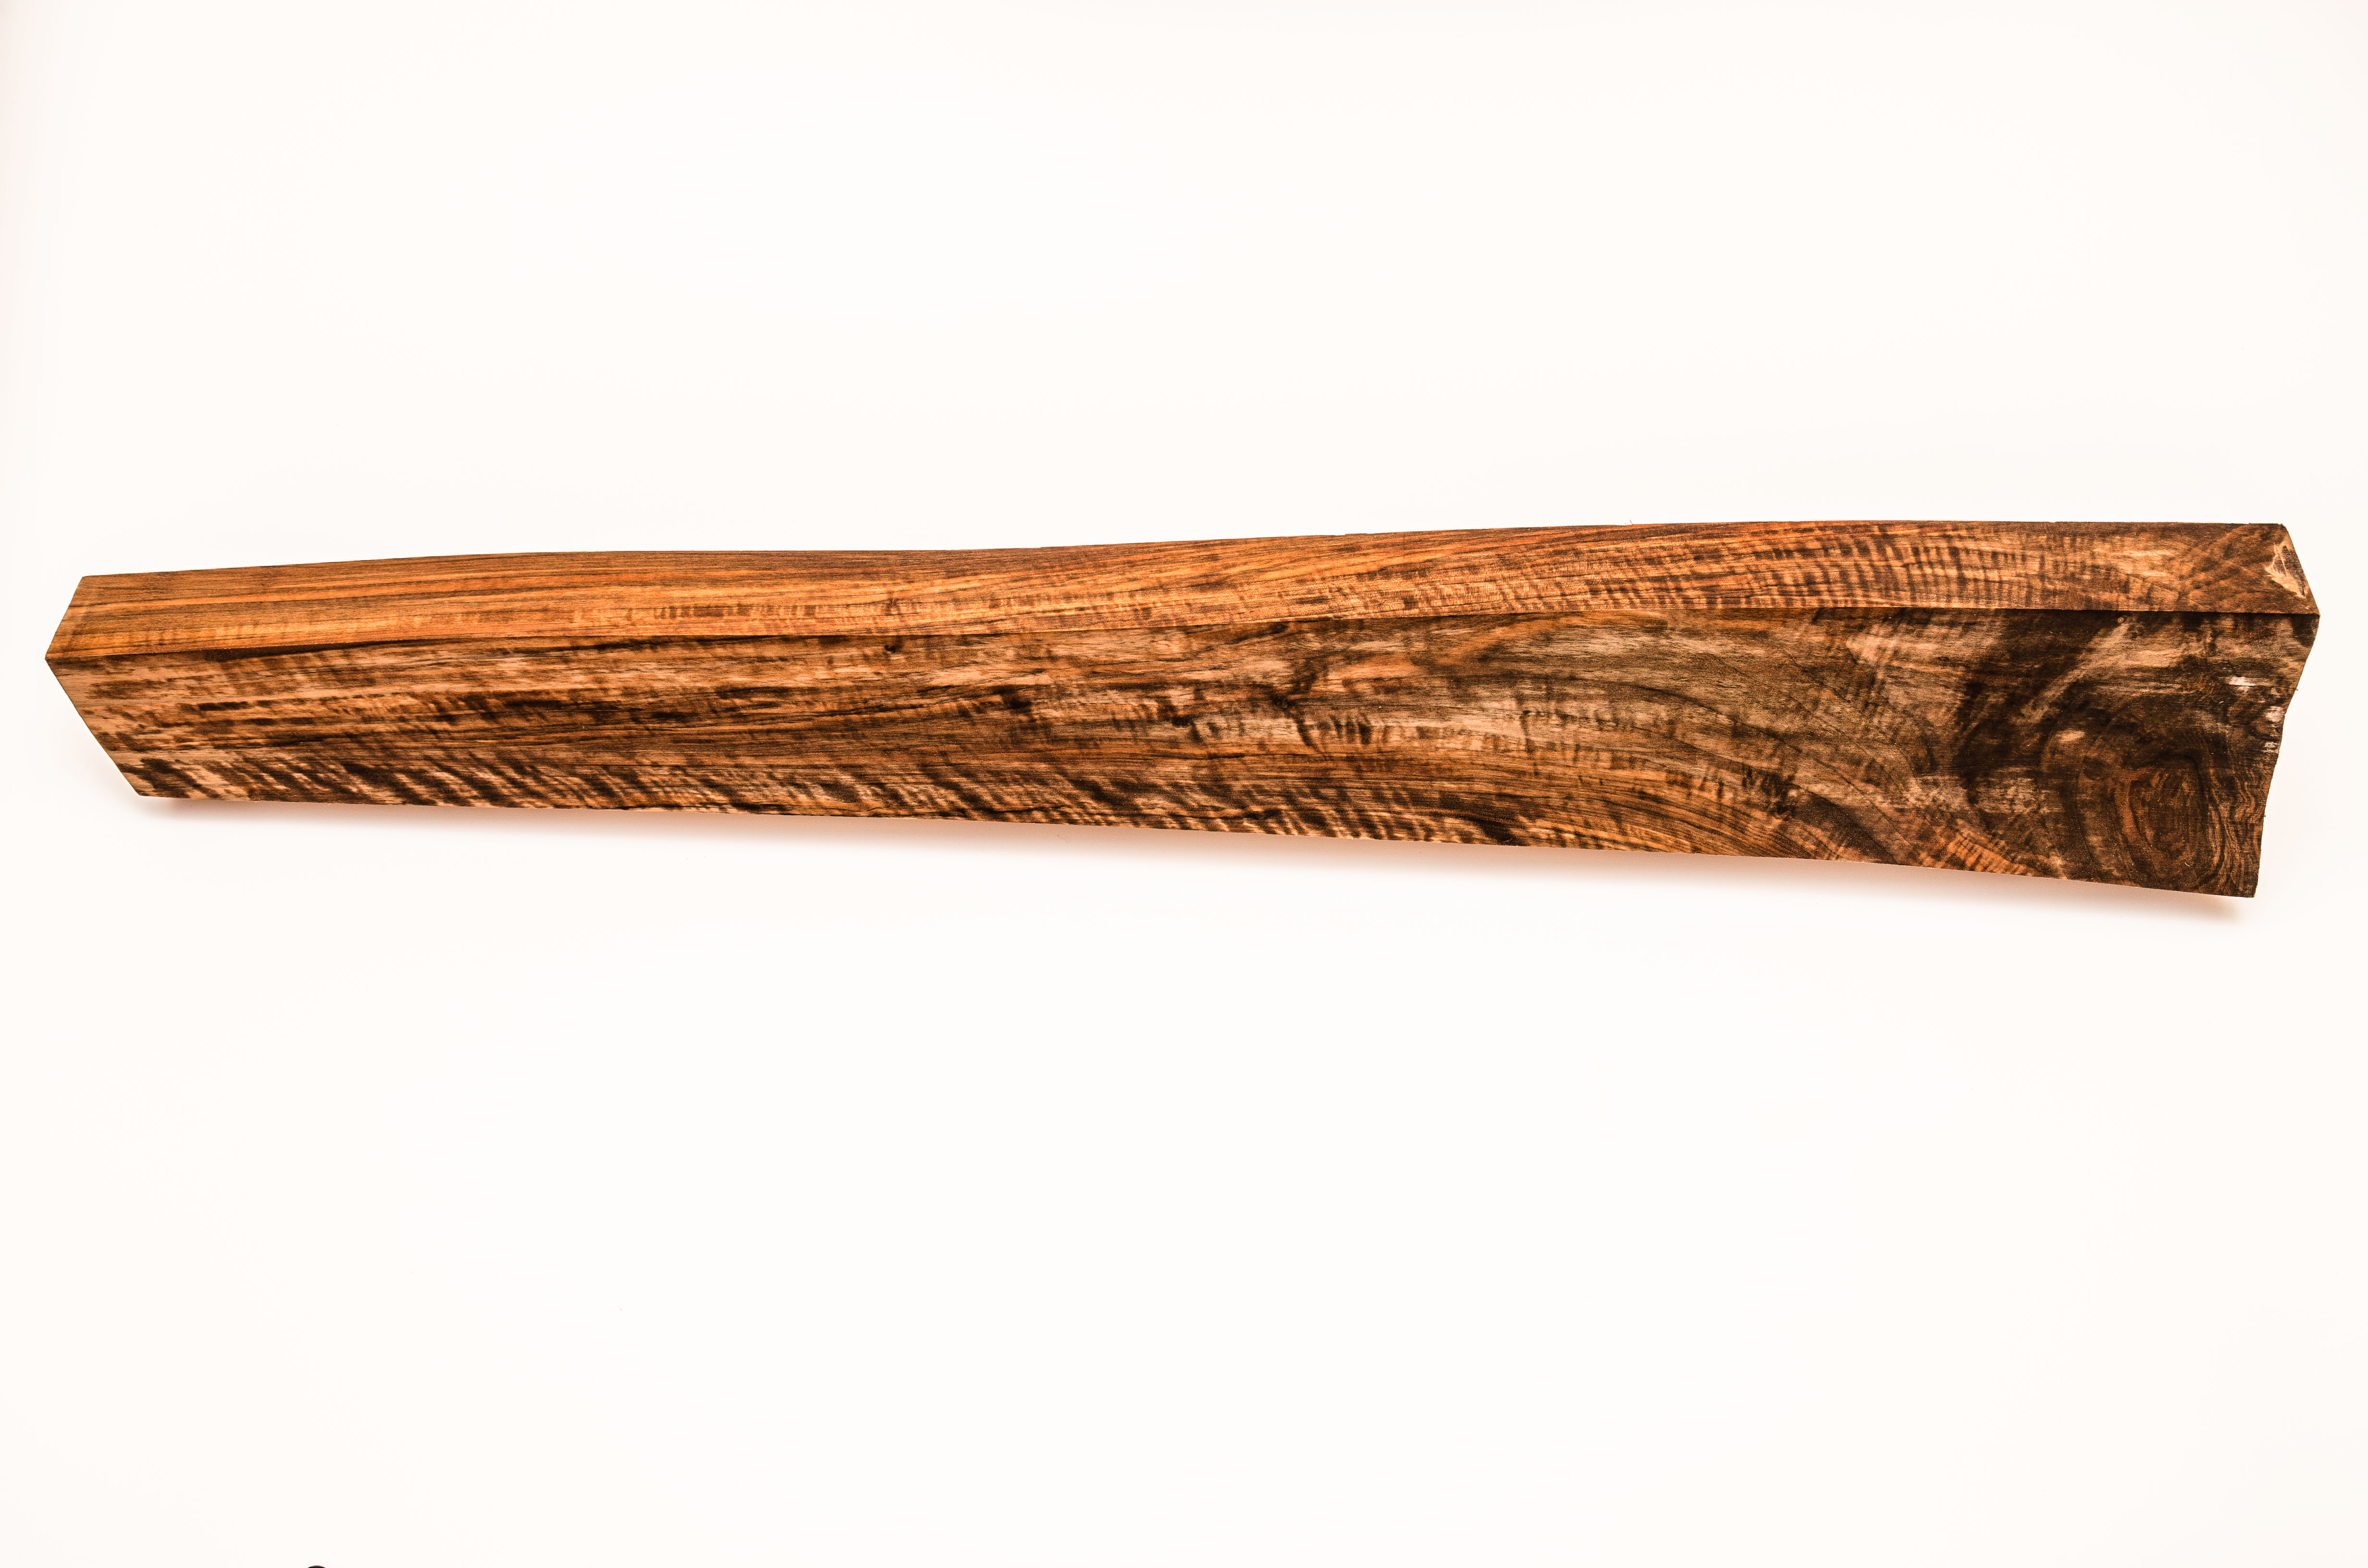 walnut_stock_blanks_for_guns_and_rifles-1302